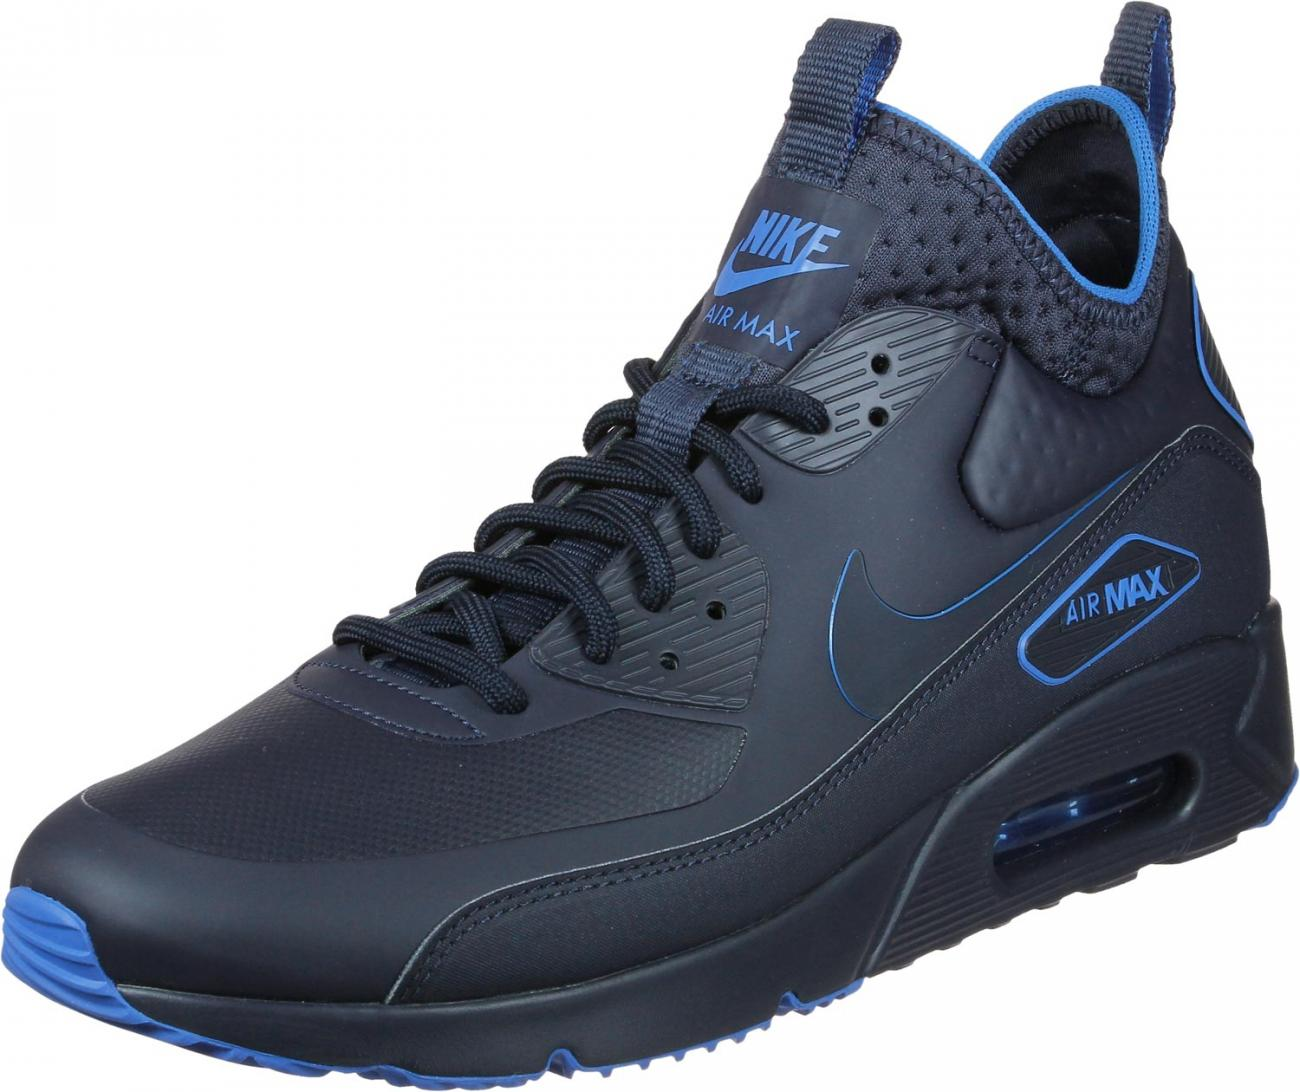 air max 90 mid homme,Nike Air Max 90 Mid Winter Green - Chaussures ...